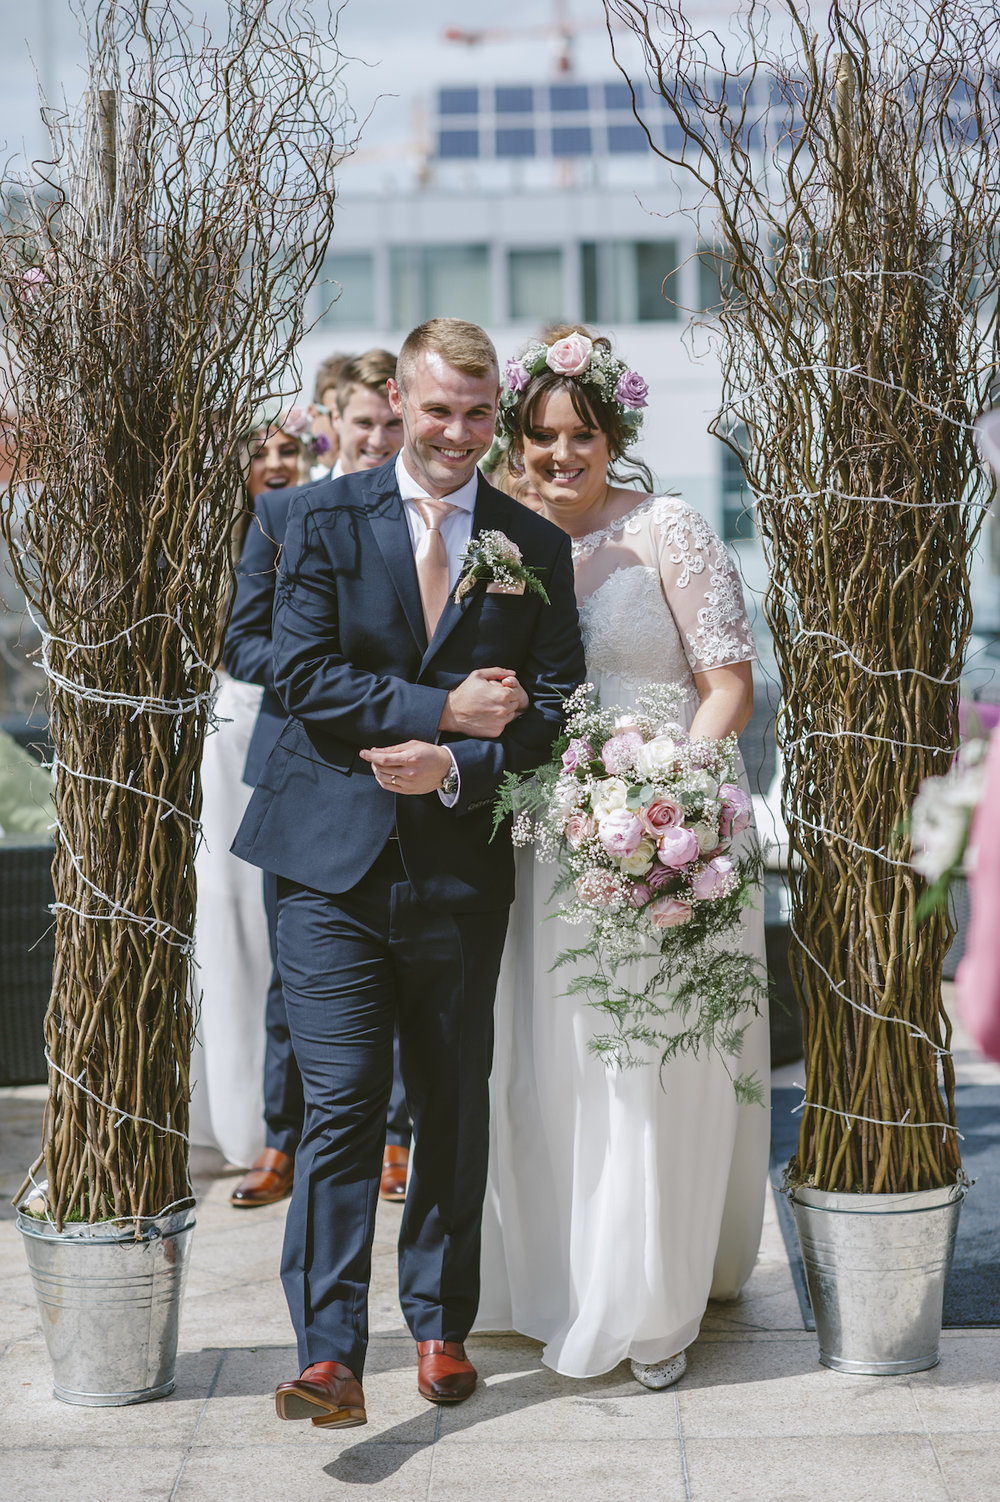 Francis_meaney_photography_merchant_hotel_wedding_belfast_inspire_weddings_4.jpeg